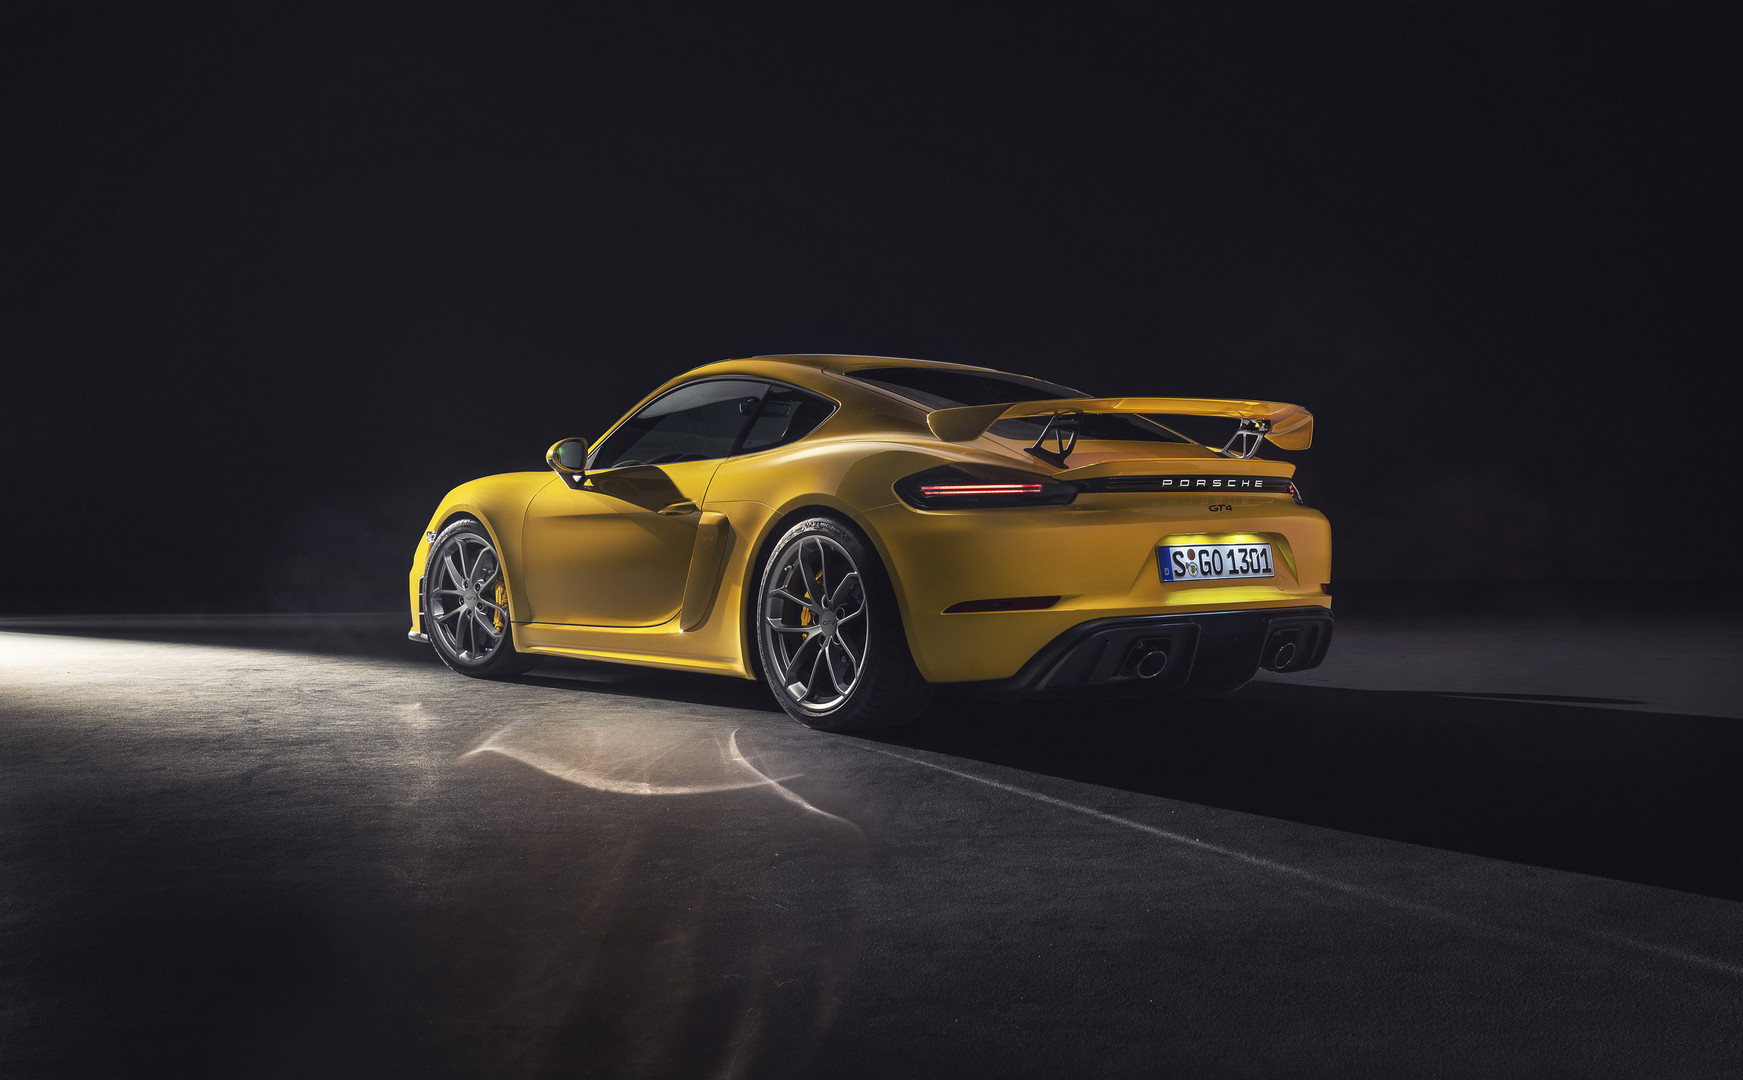 Porsche 718 Cayman GT4 Rear View